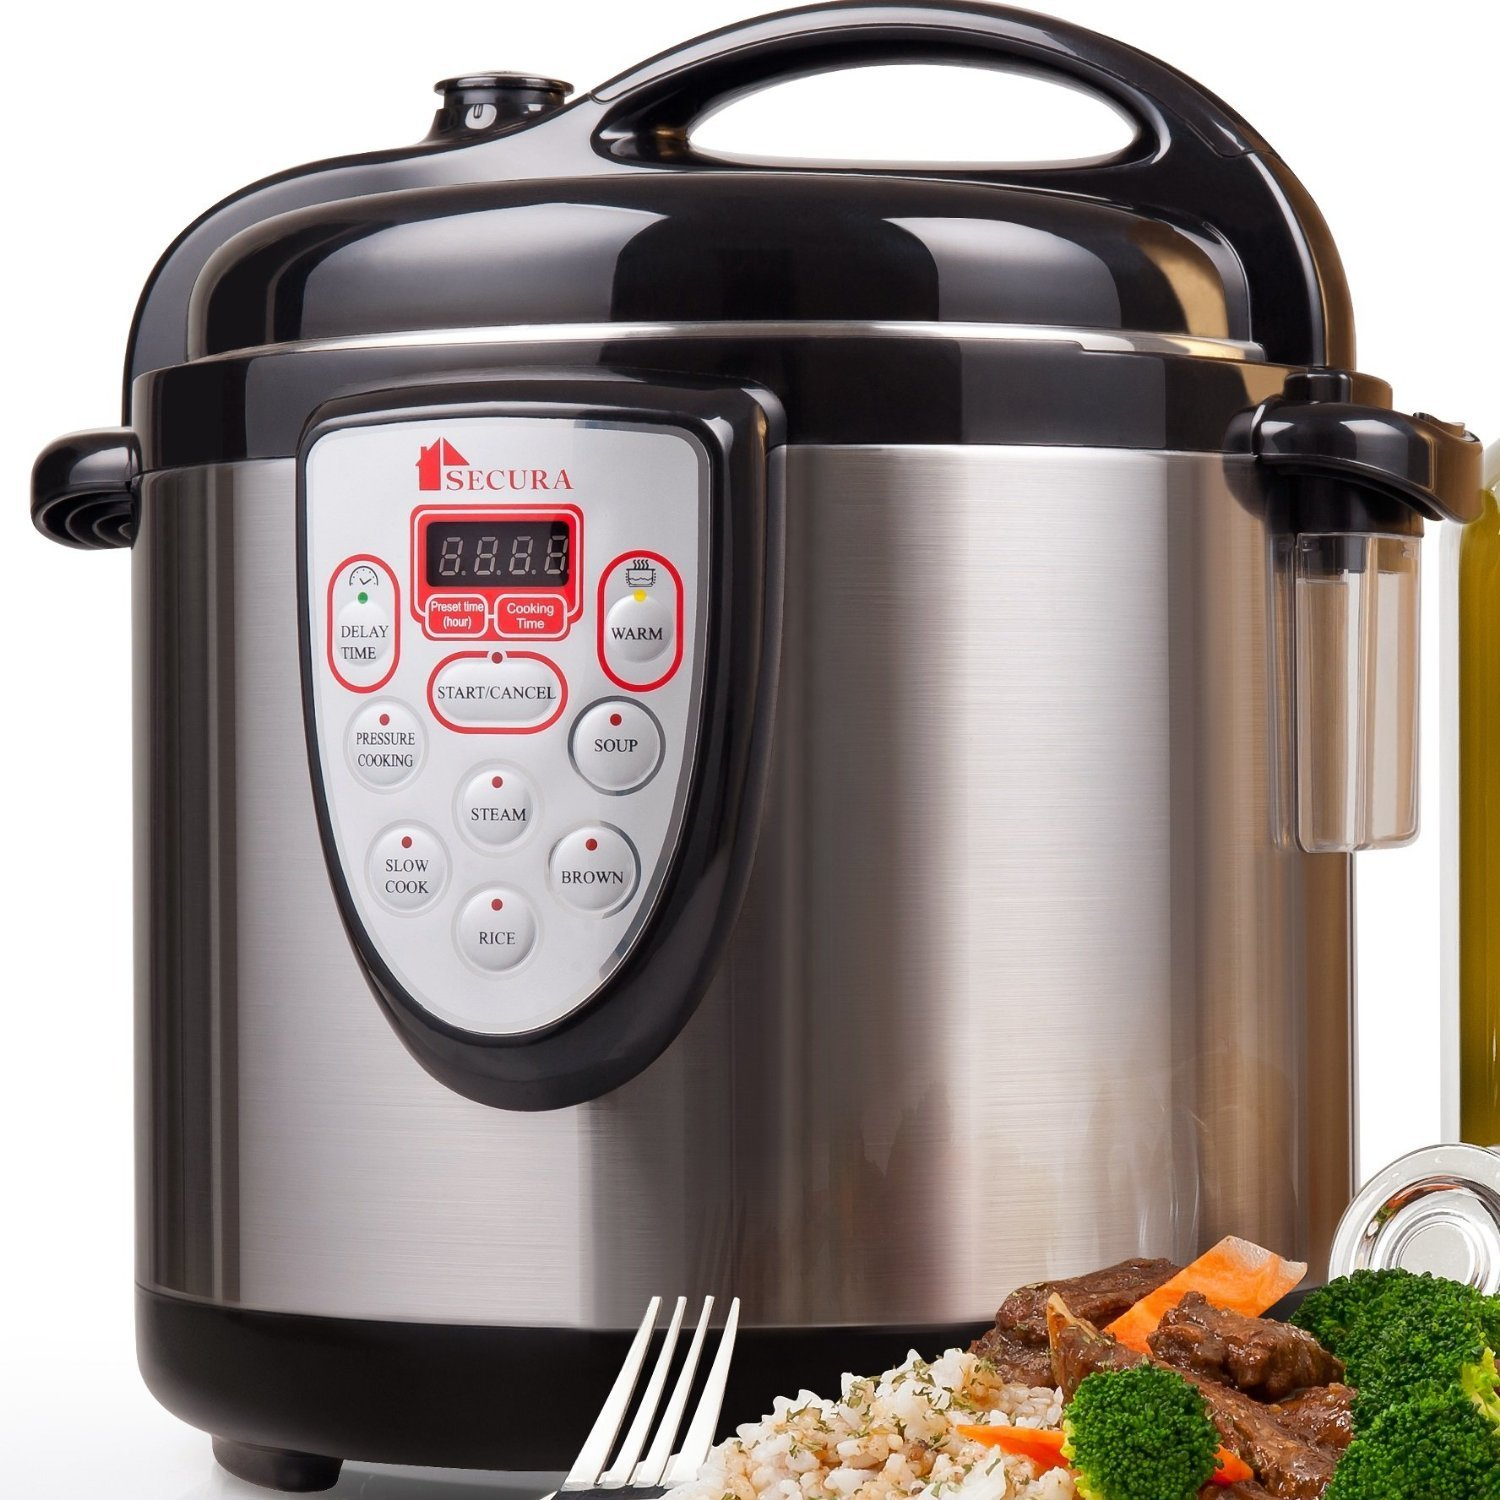 Secura 6-in-1 Programmable Electric Pressure Cooker